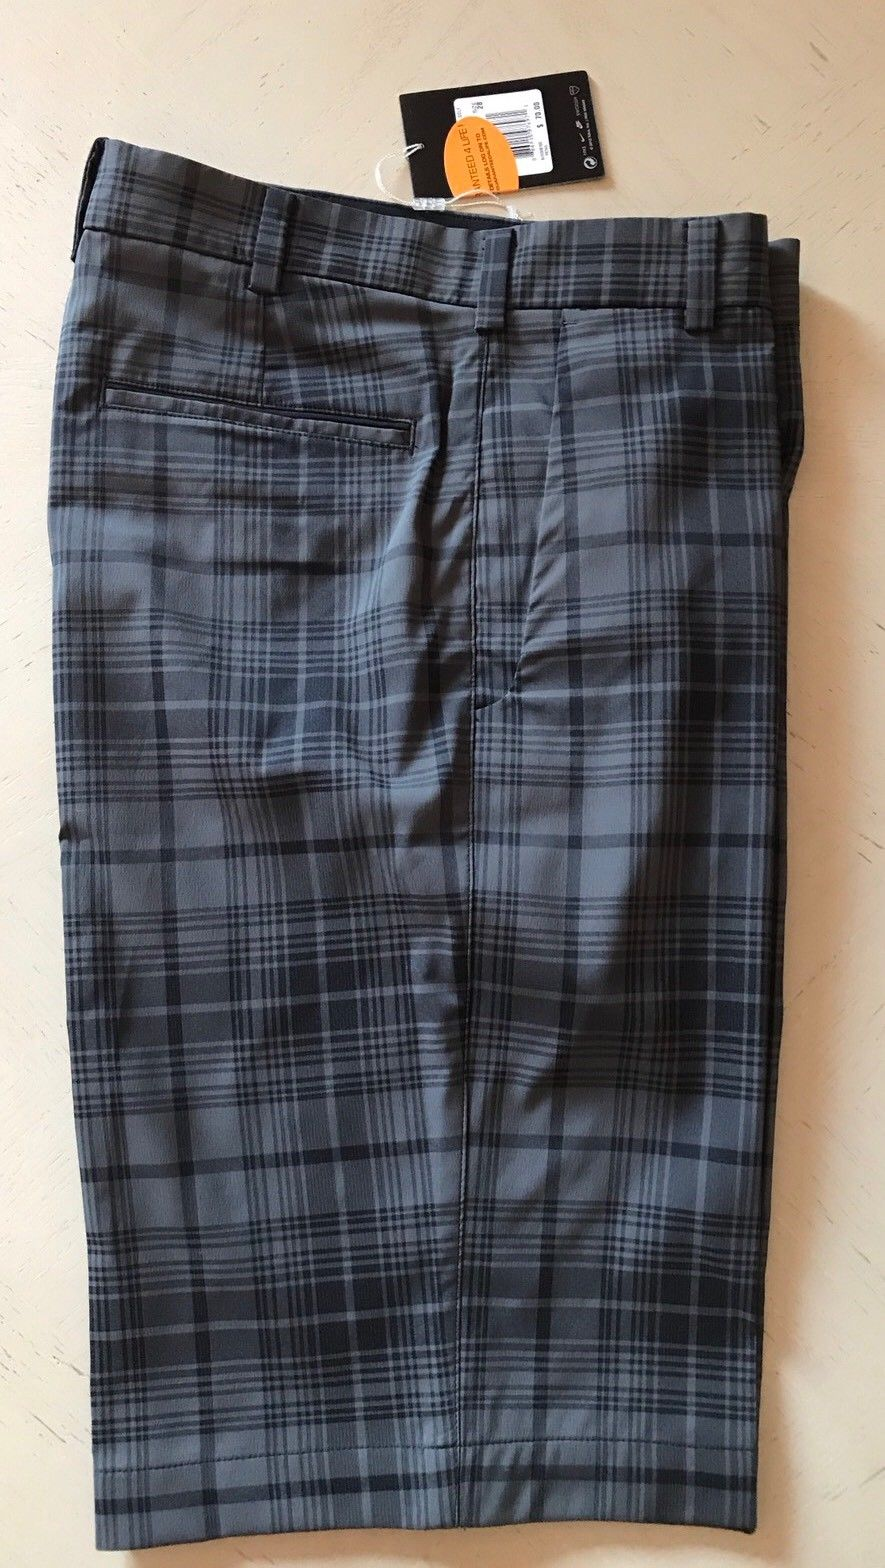 New $70 Nike Golf Short Pants DK Gray Size 28 - BAYSUPERSTORE